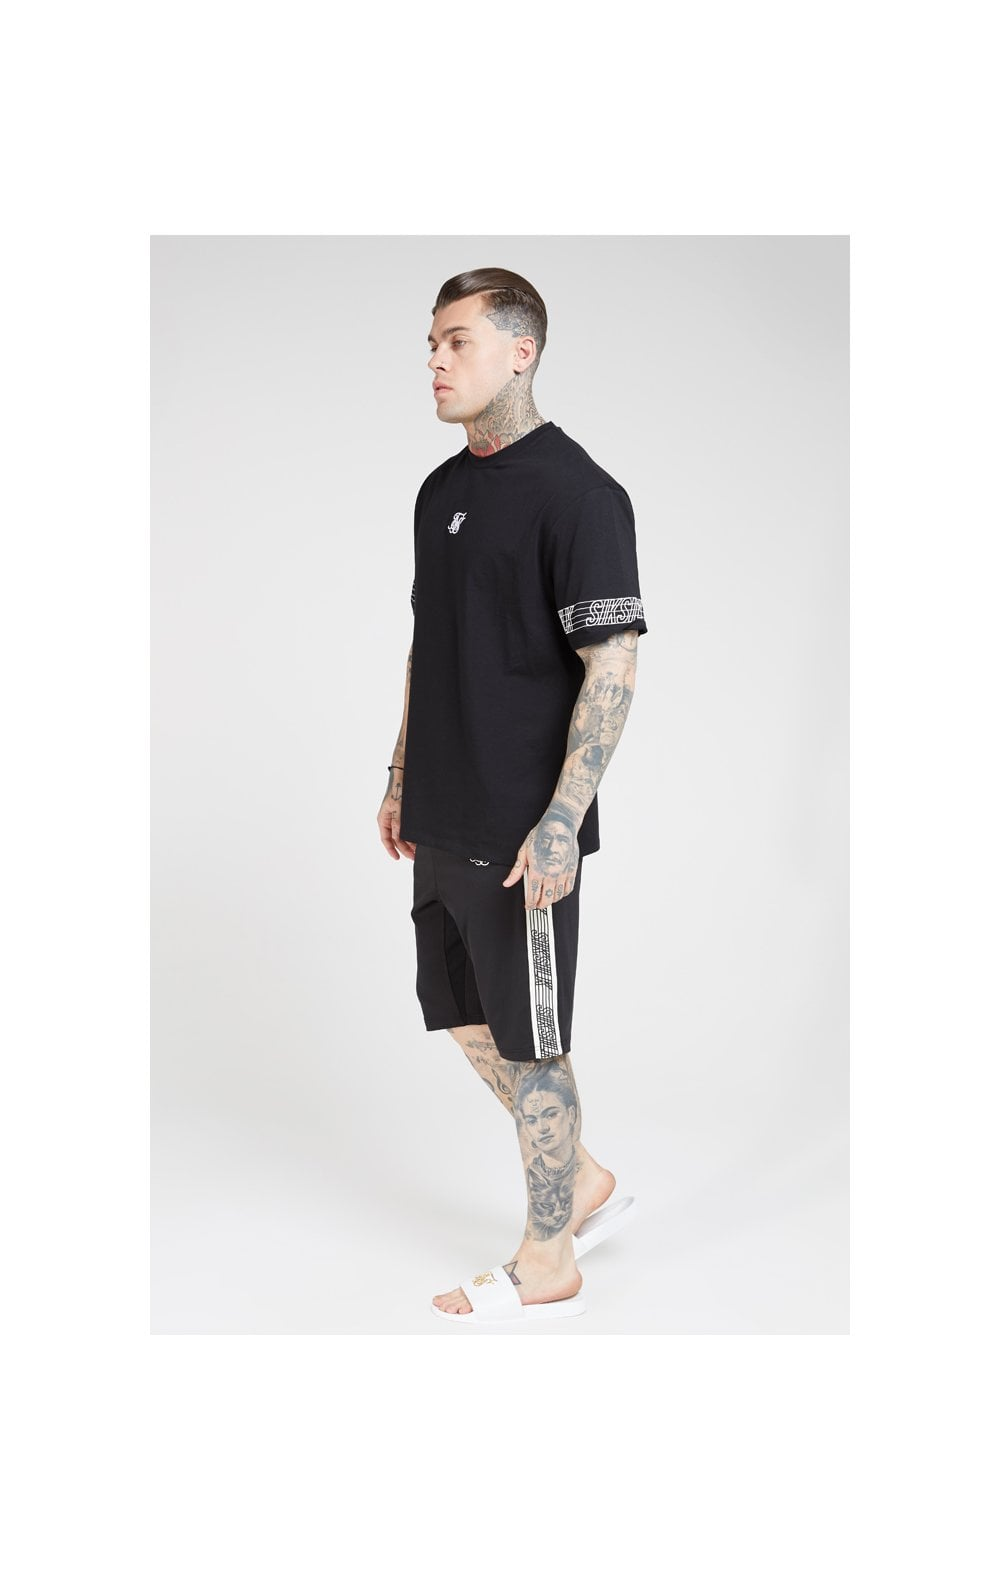 SikSilk S/S Essential Runner Oversized Tee – Black (4)